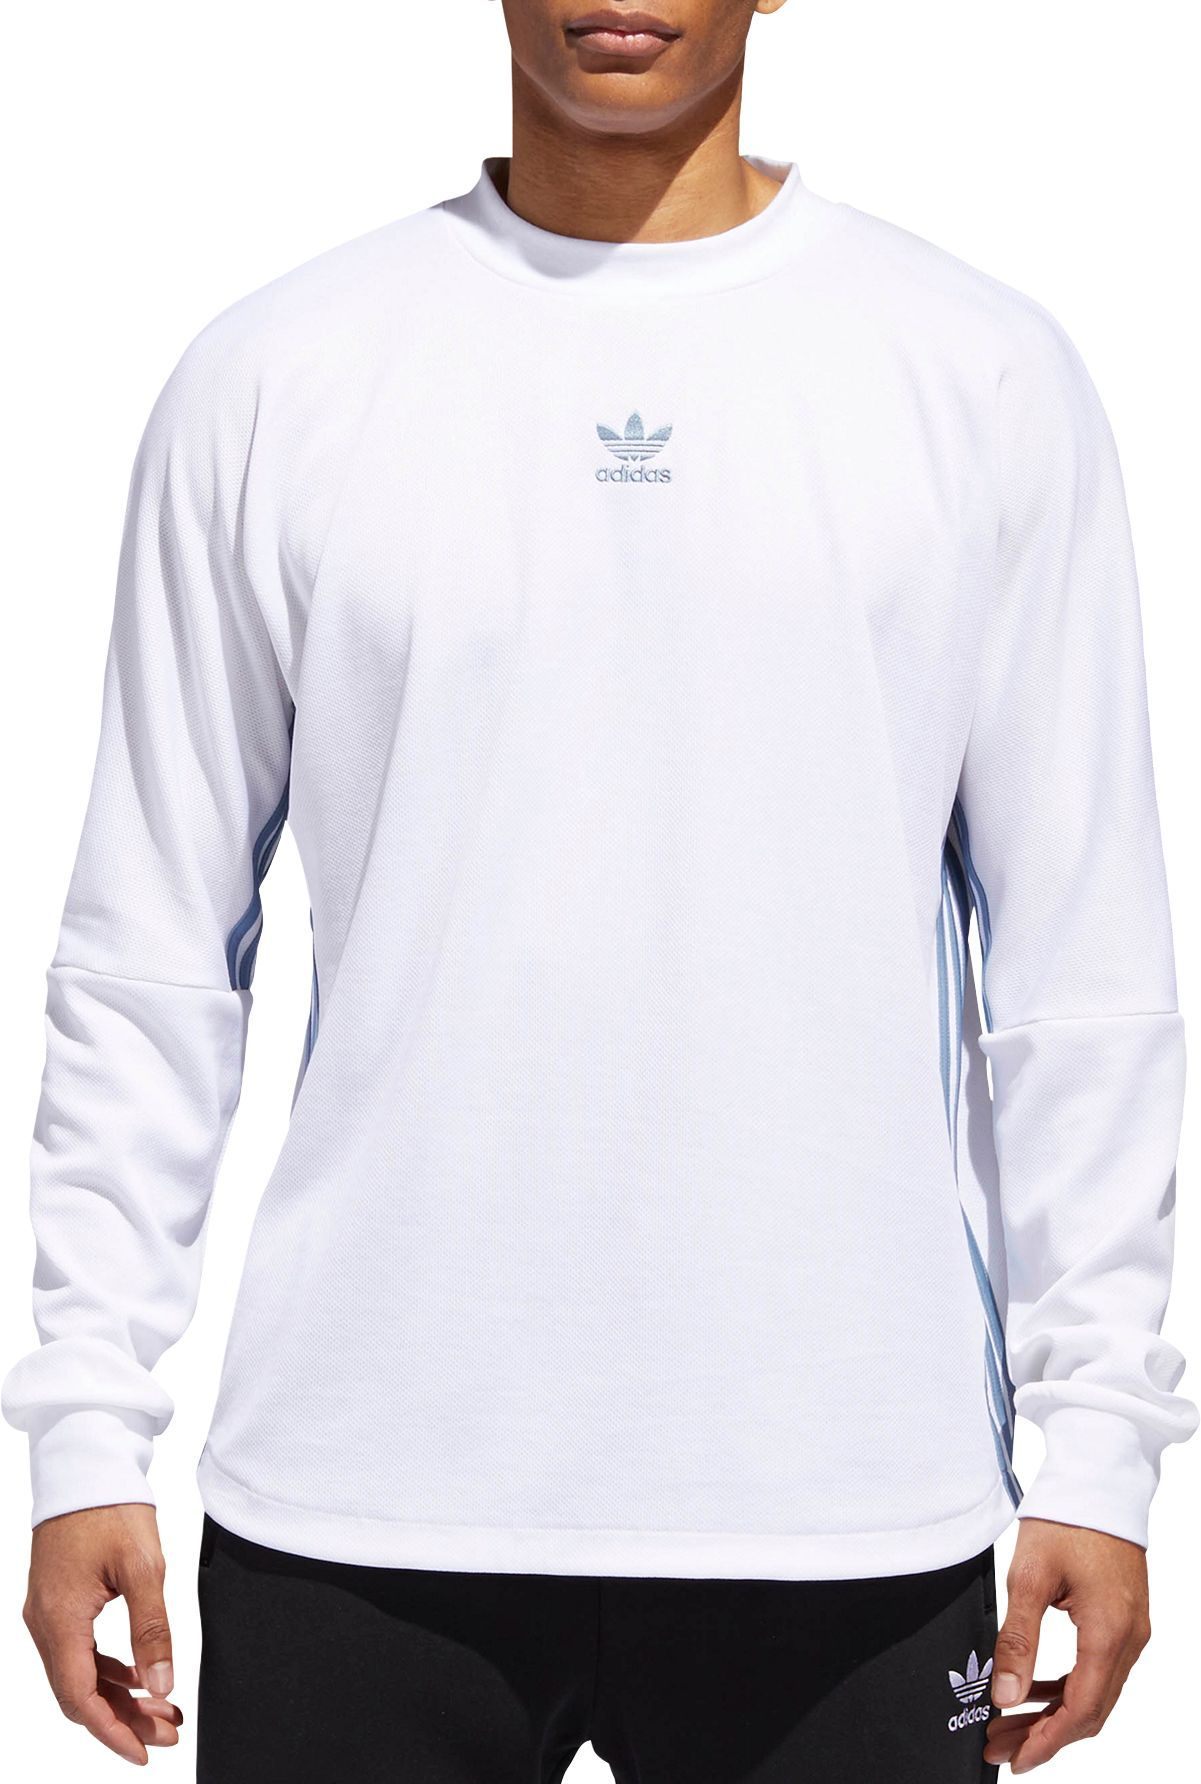 d92feba9a63a3 adidas Originals Men's Authentics 3-Stripes Jersey Long Sleeve Shirt, White